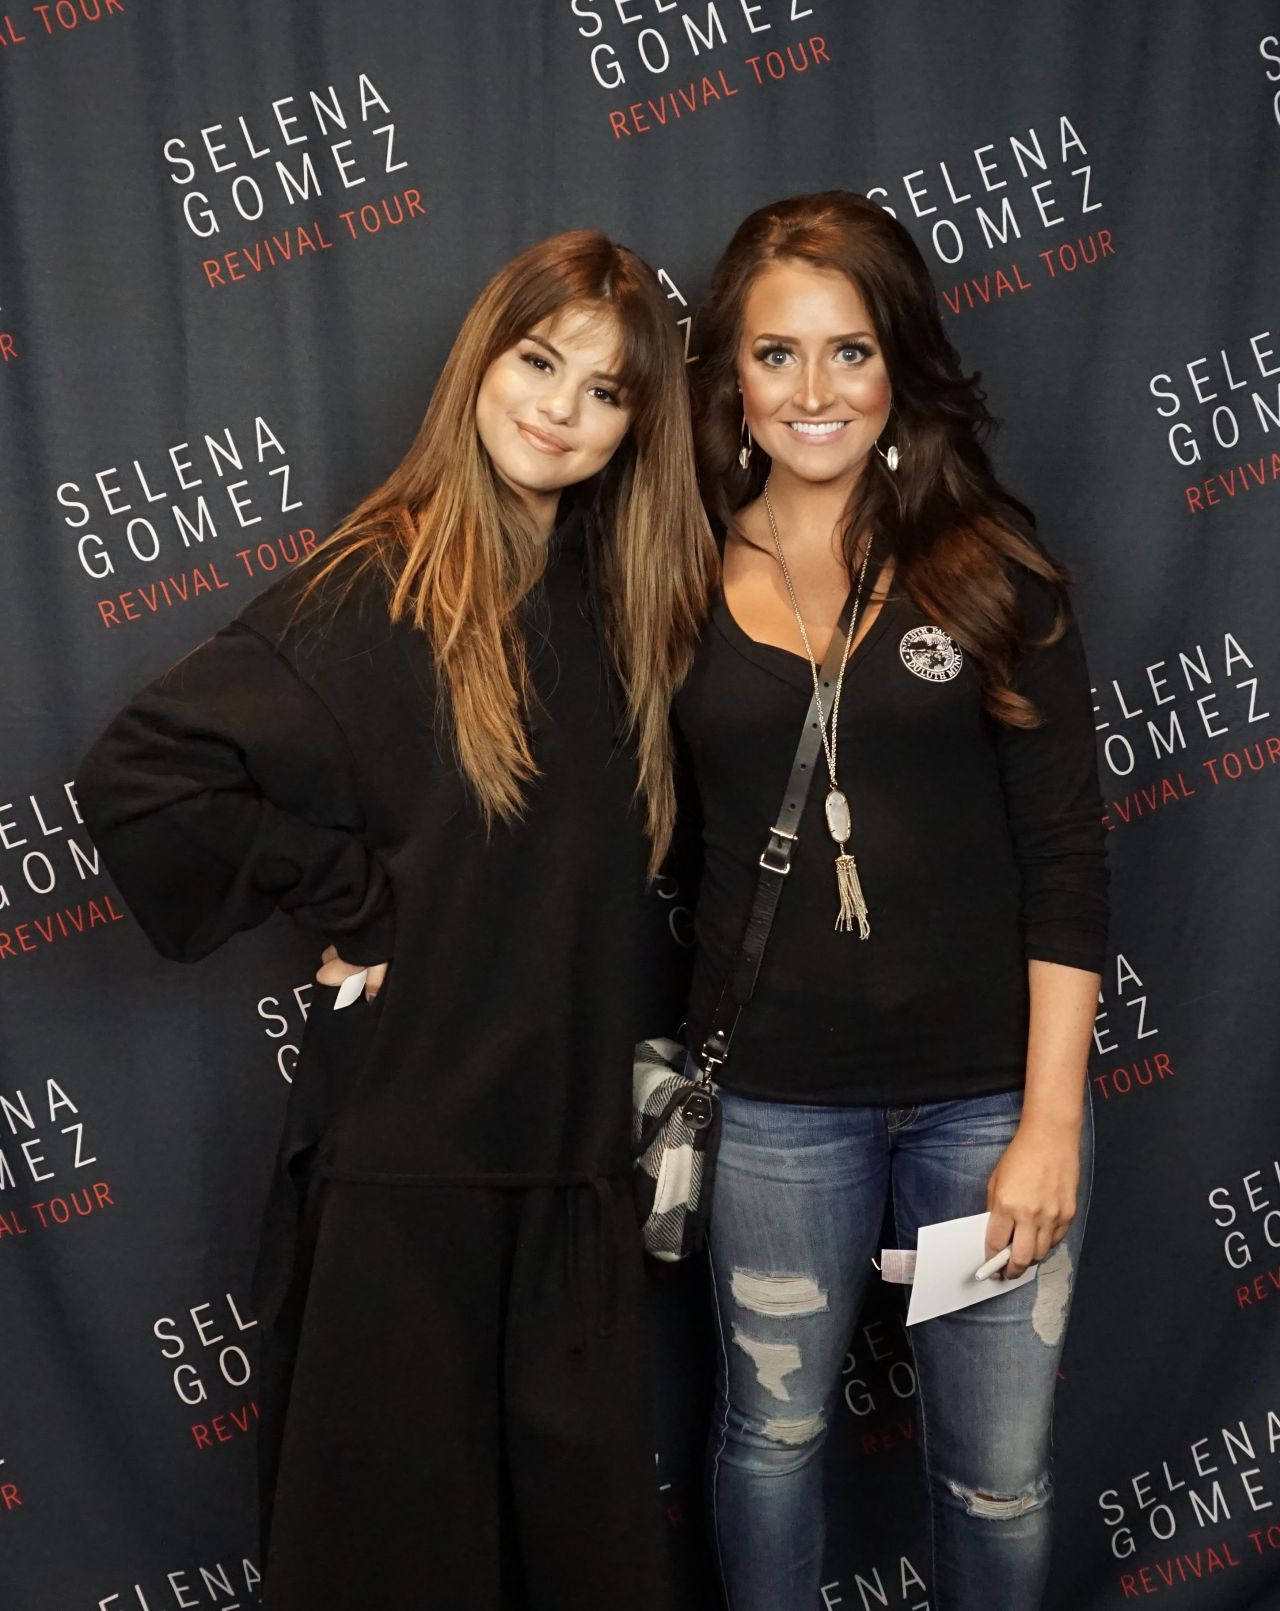 selena gomez meet and greet review